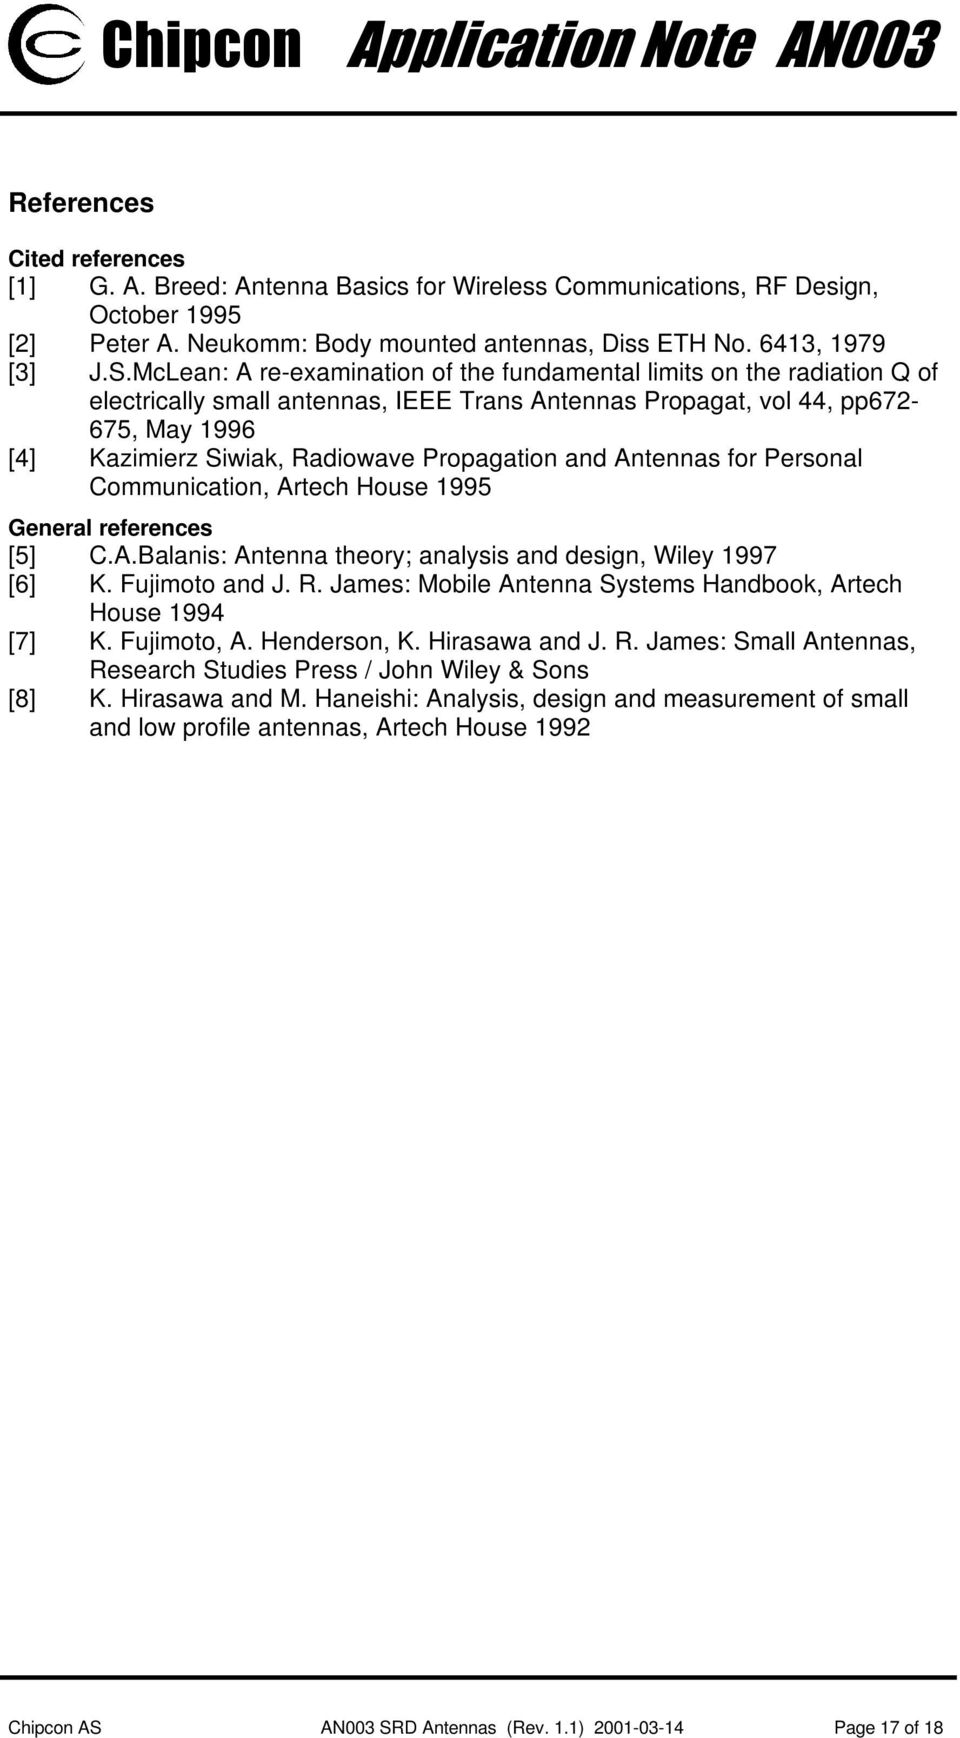 Propagation and Antennas for Personal Communication, Artech House 1995 General references [5] C.A.Balanis: Antenna theory; analysis and design, Wiley 1997 [6] K. Fujimoto and J. R.